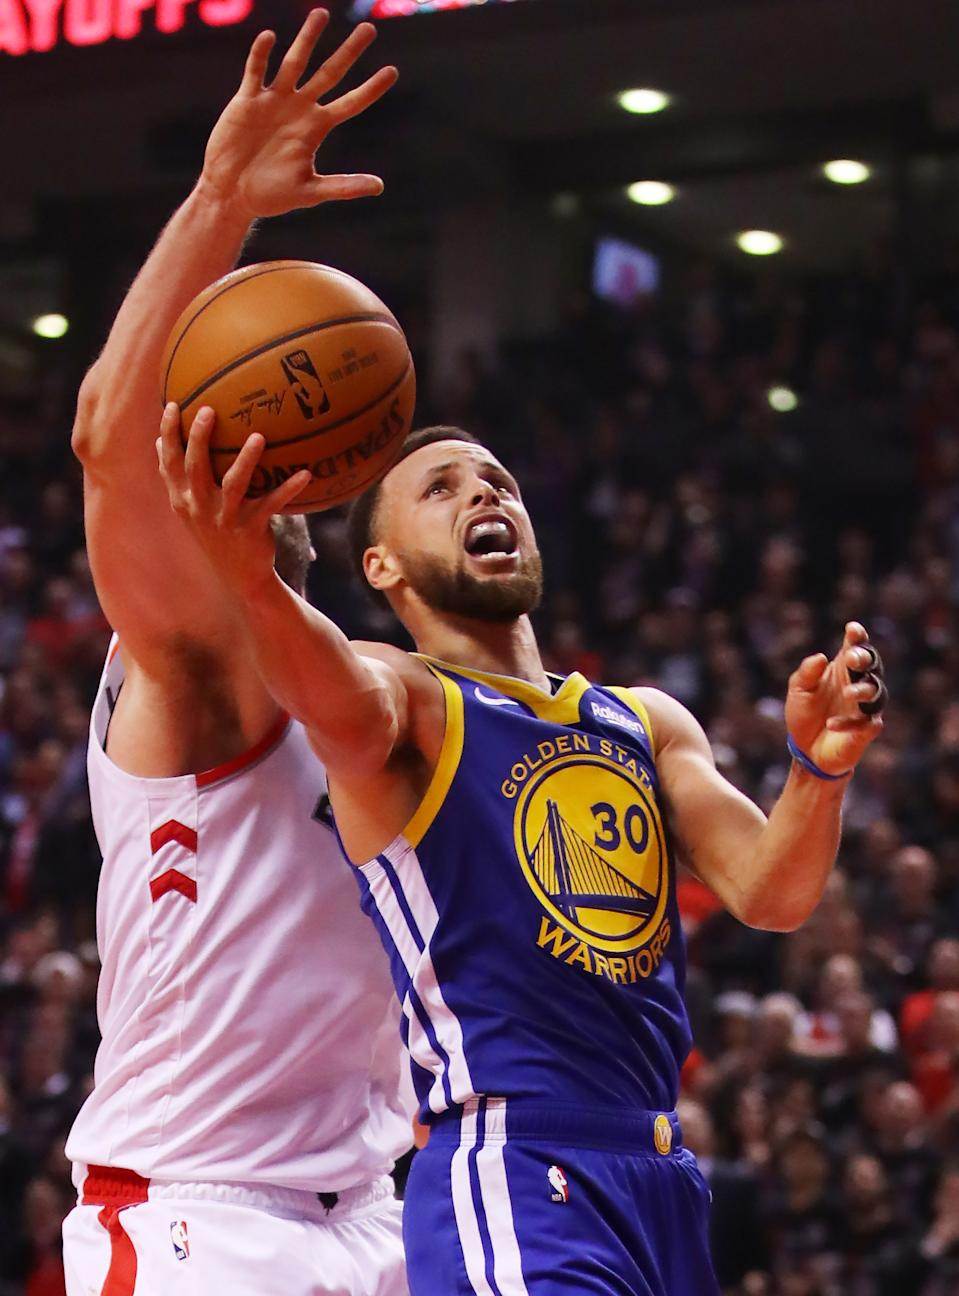 Stephen Curry #30 of the Golden State Warriors attempts a shot against the Toronto Raptors in the second quarter during Game One of the 2019 NBA Finals at Scotiabank Arena on May 30, 2019 in Toronto, Canada. (Photo by Gregory Shamus/Getty Images)